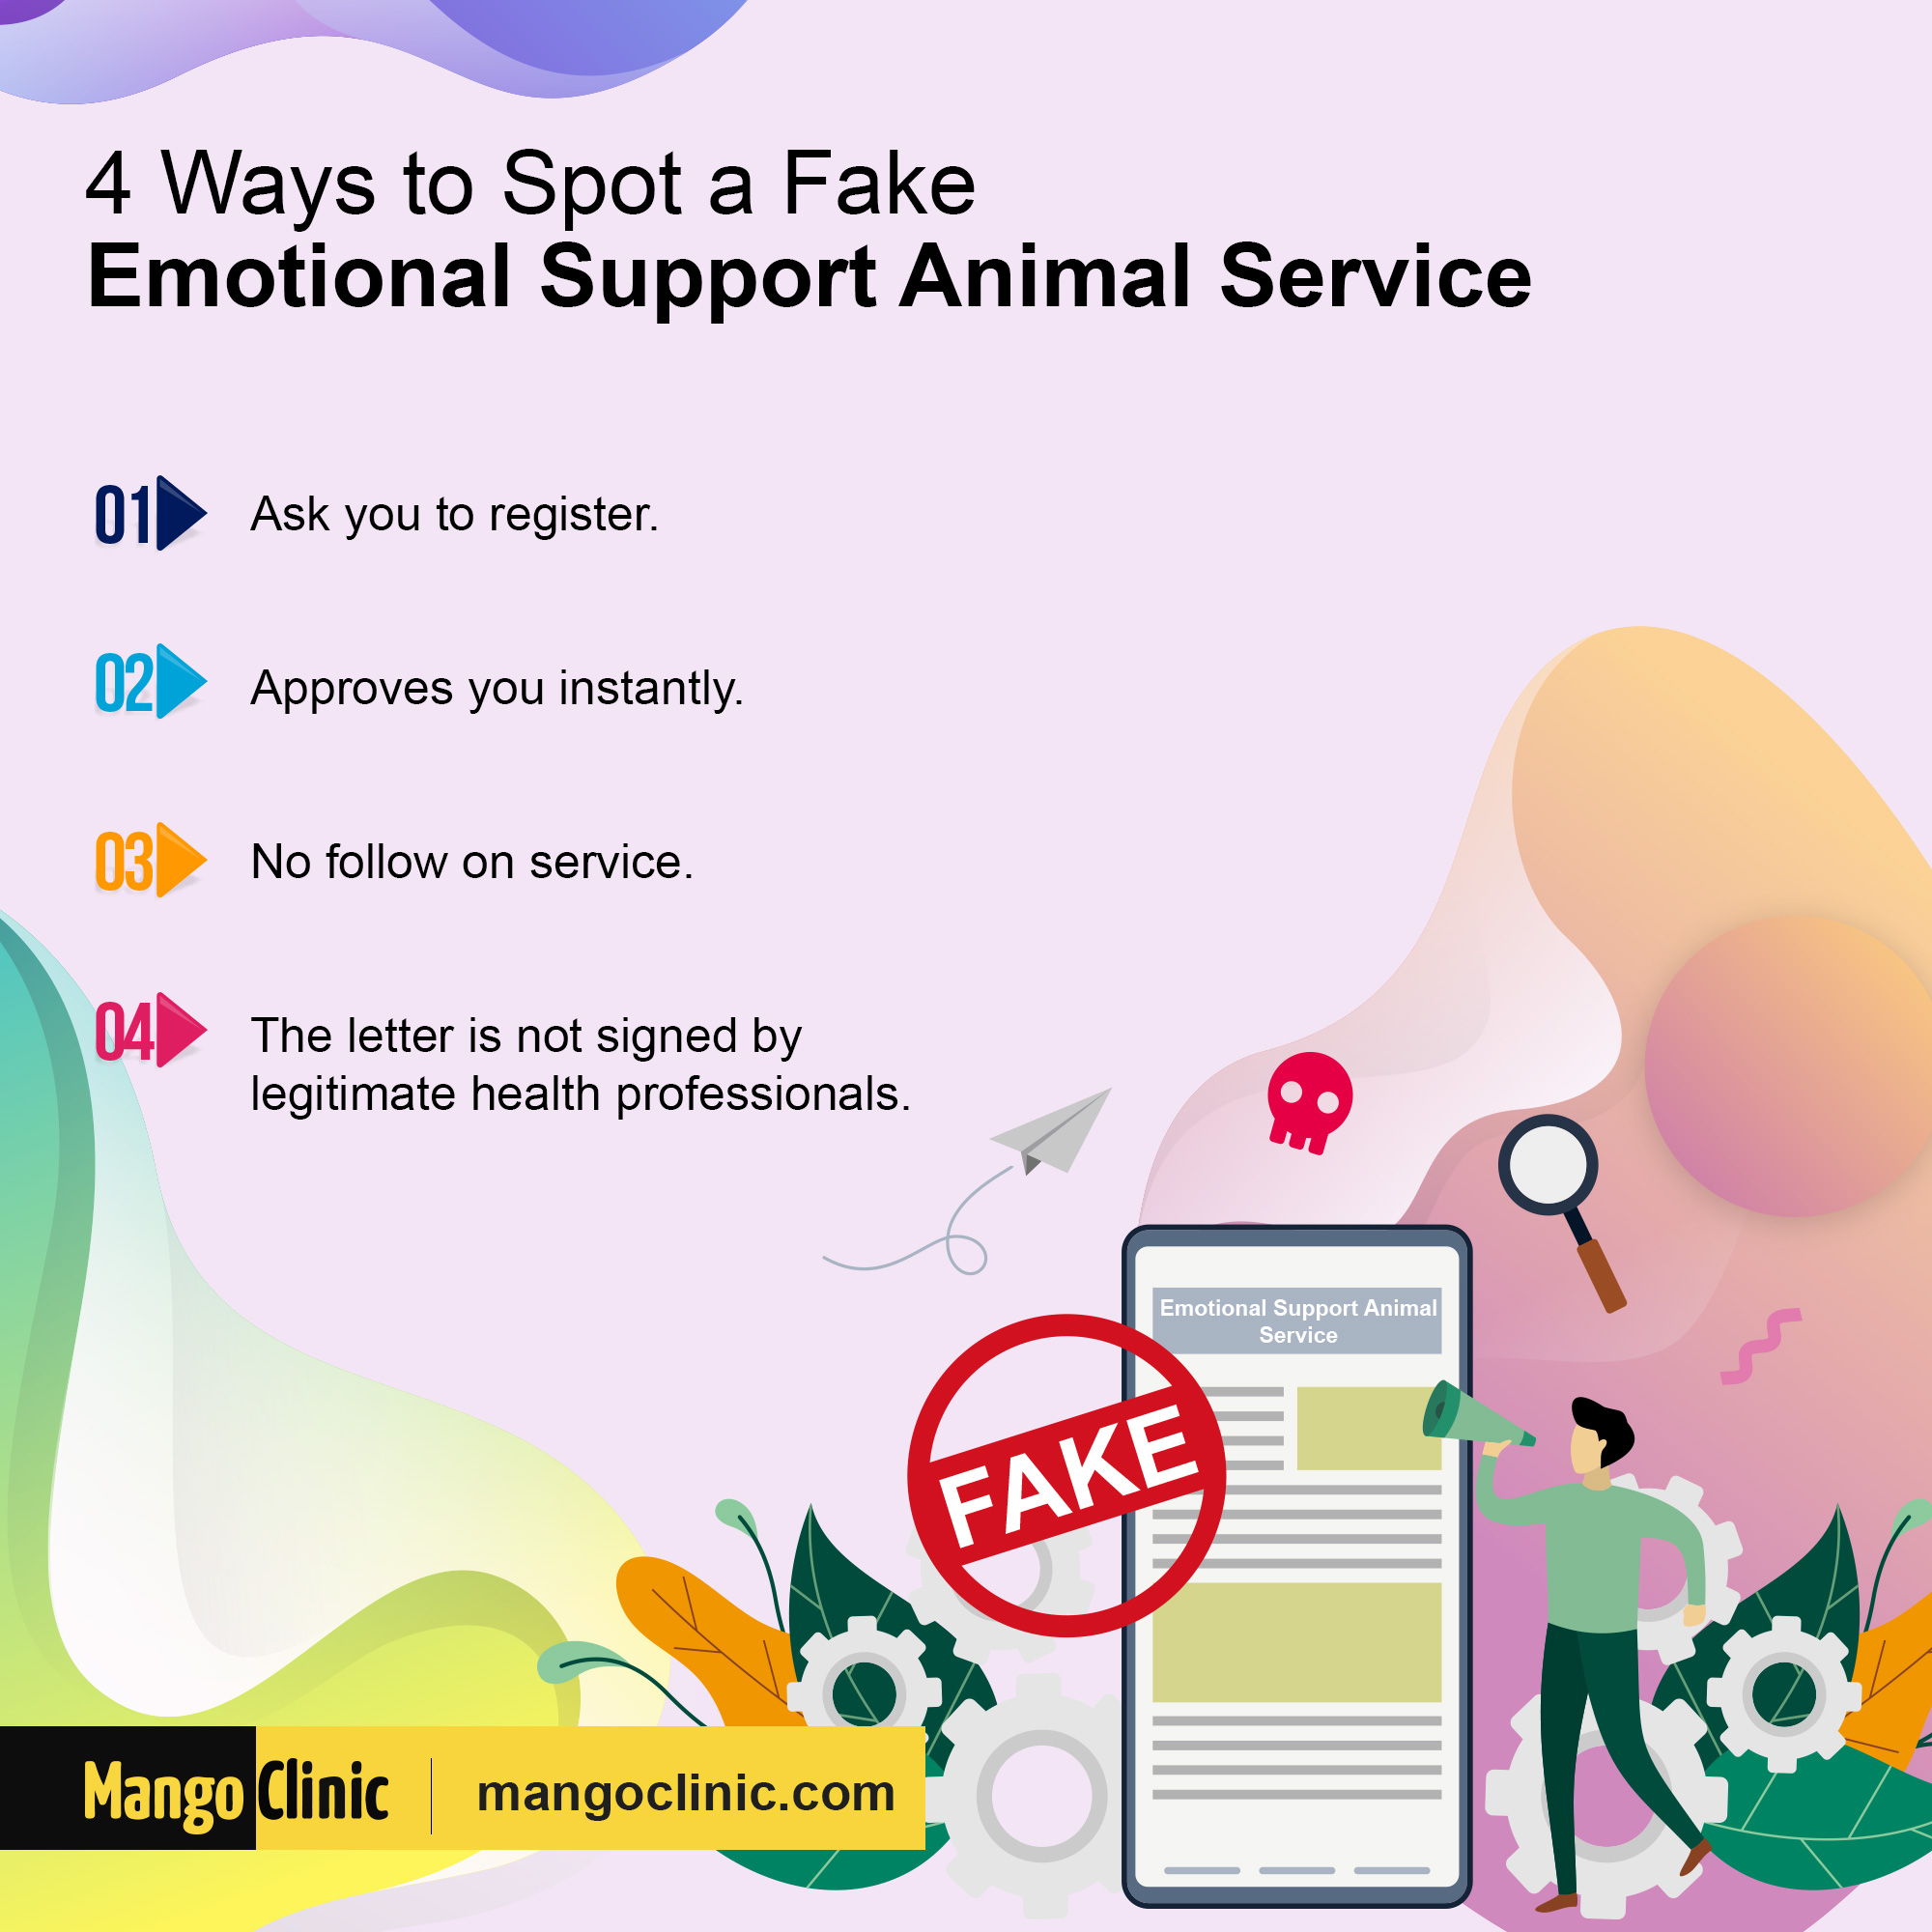 Fake emotional support animal service